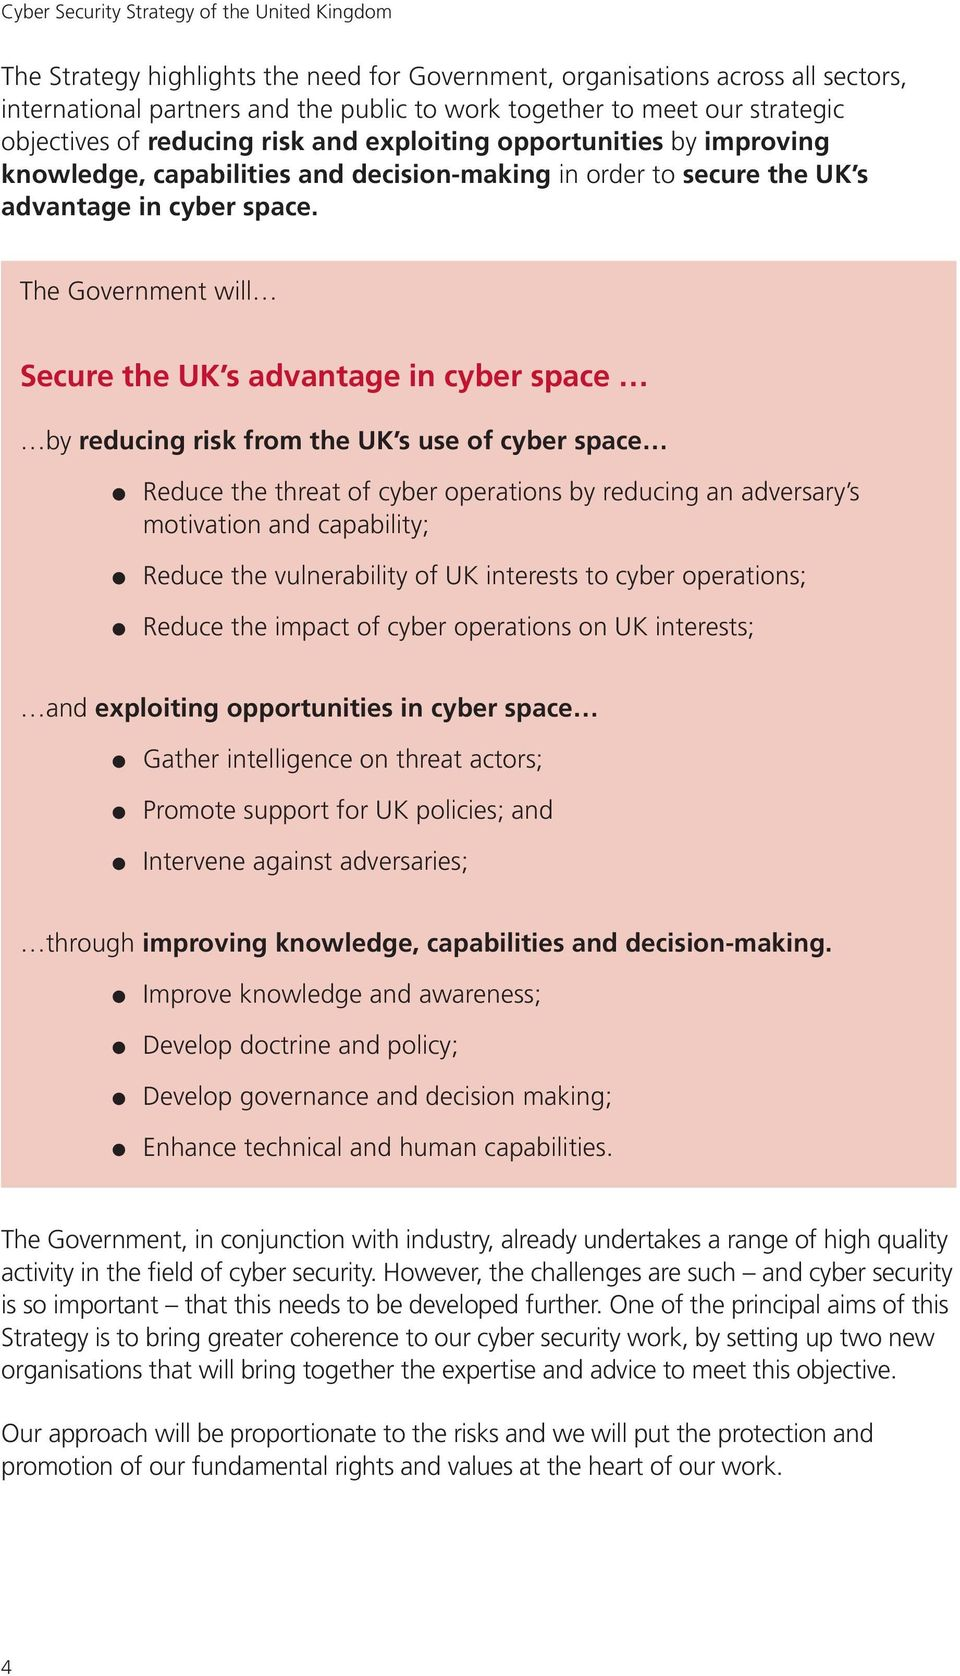 The Government will Secure the UK s advantage in cyber space by reducing risk from the UK s use of cyber space Reduce the threat of cyber operations by reducing an adversary s motivation and